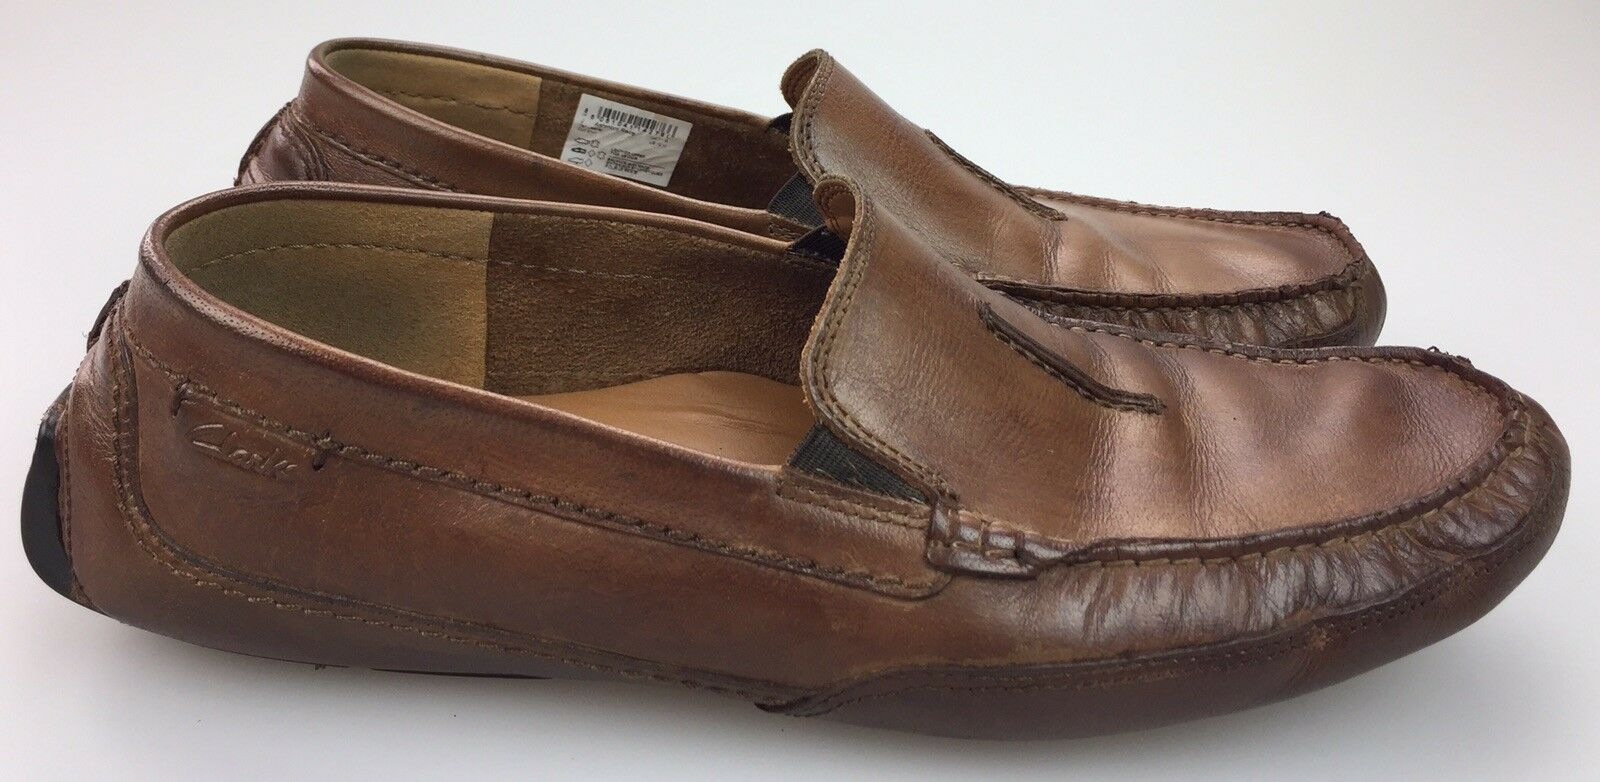 CLARKS Mansell Brown Leather Men's